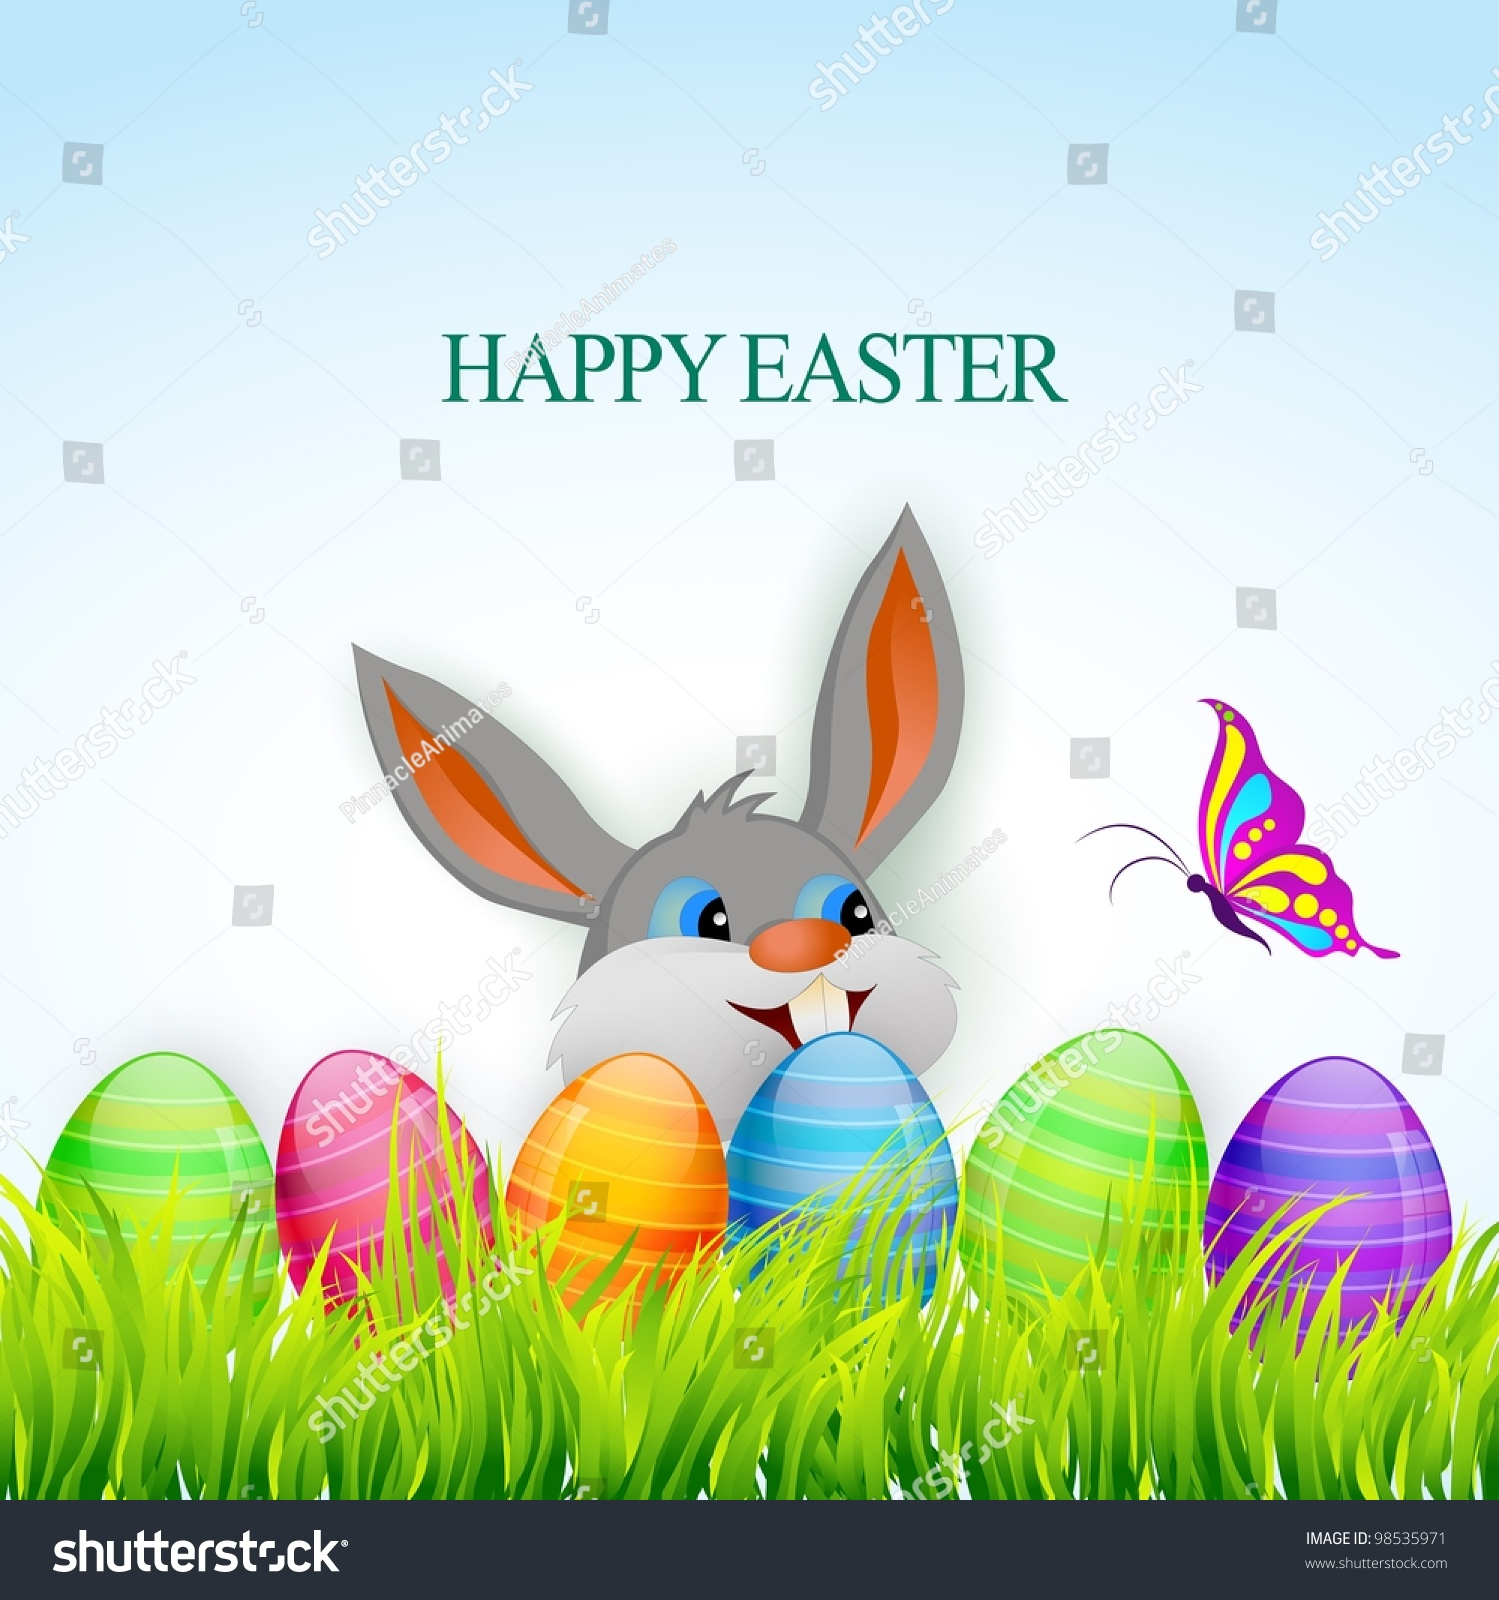 Vector Happy Easter Colorful Illustration Stock Vector ...